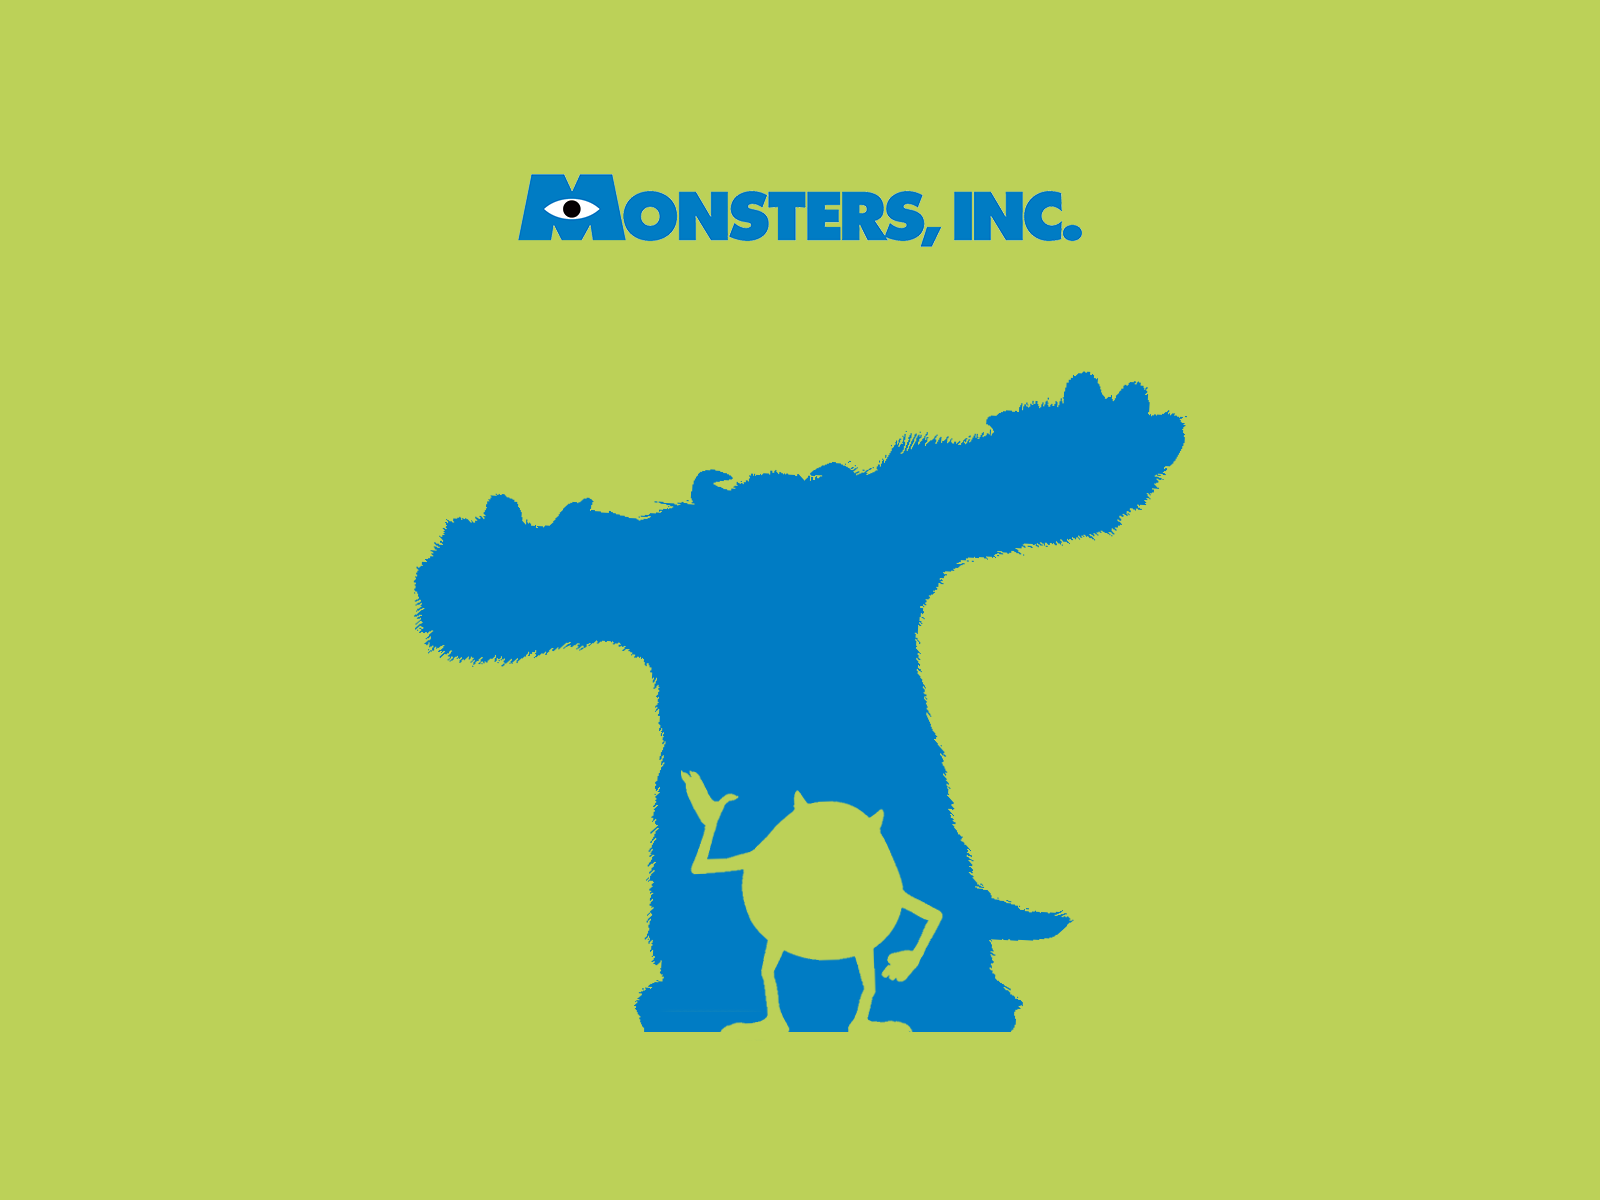 monsters, inc. wallpaper and background image | 1600x1200 | id:429662